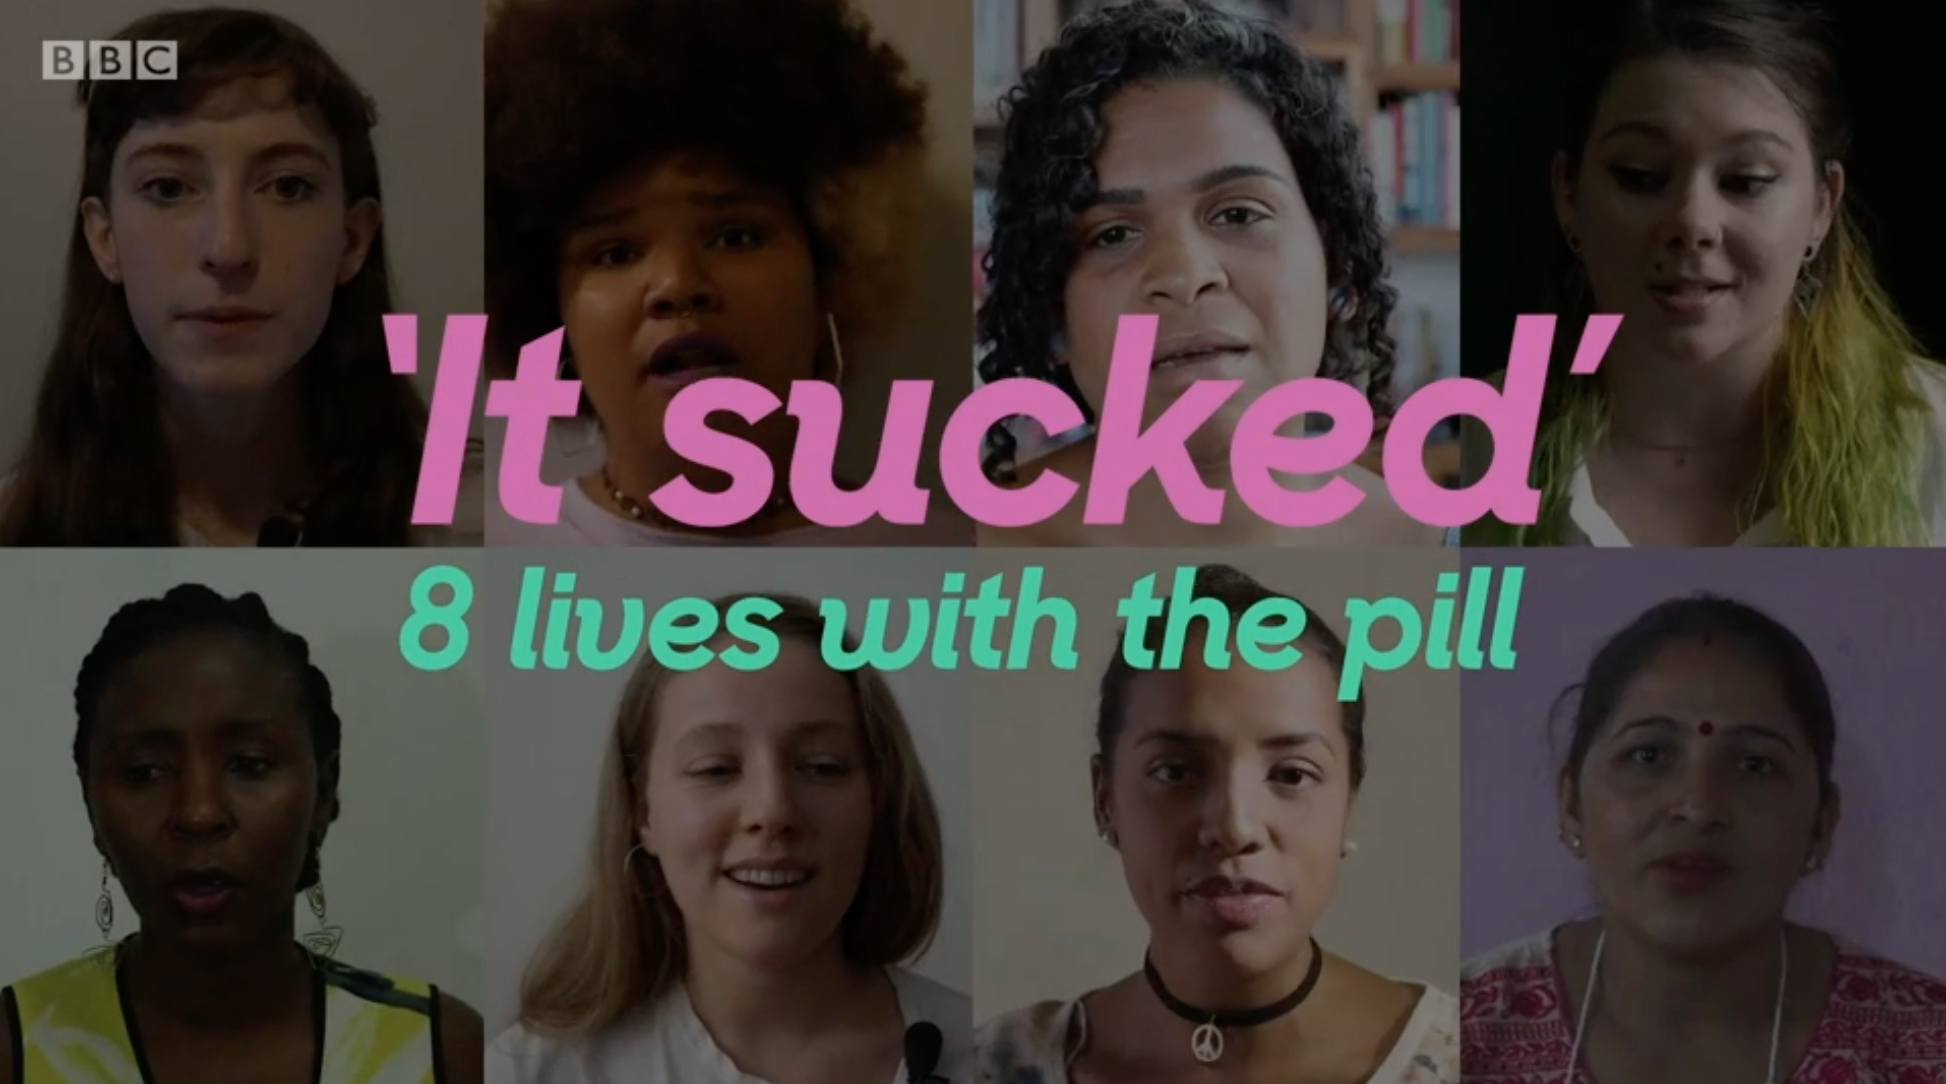 It Sucked: Eight Lives with the Pill